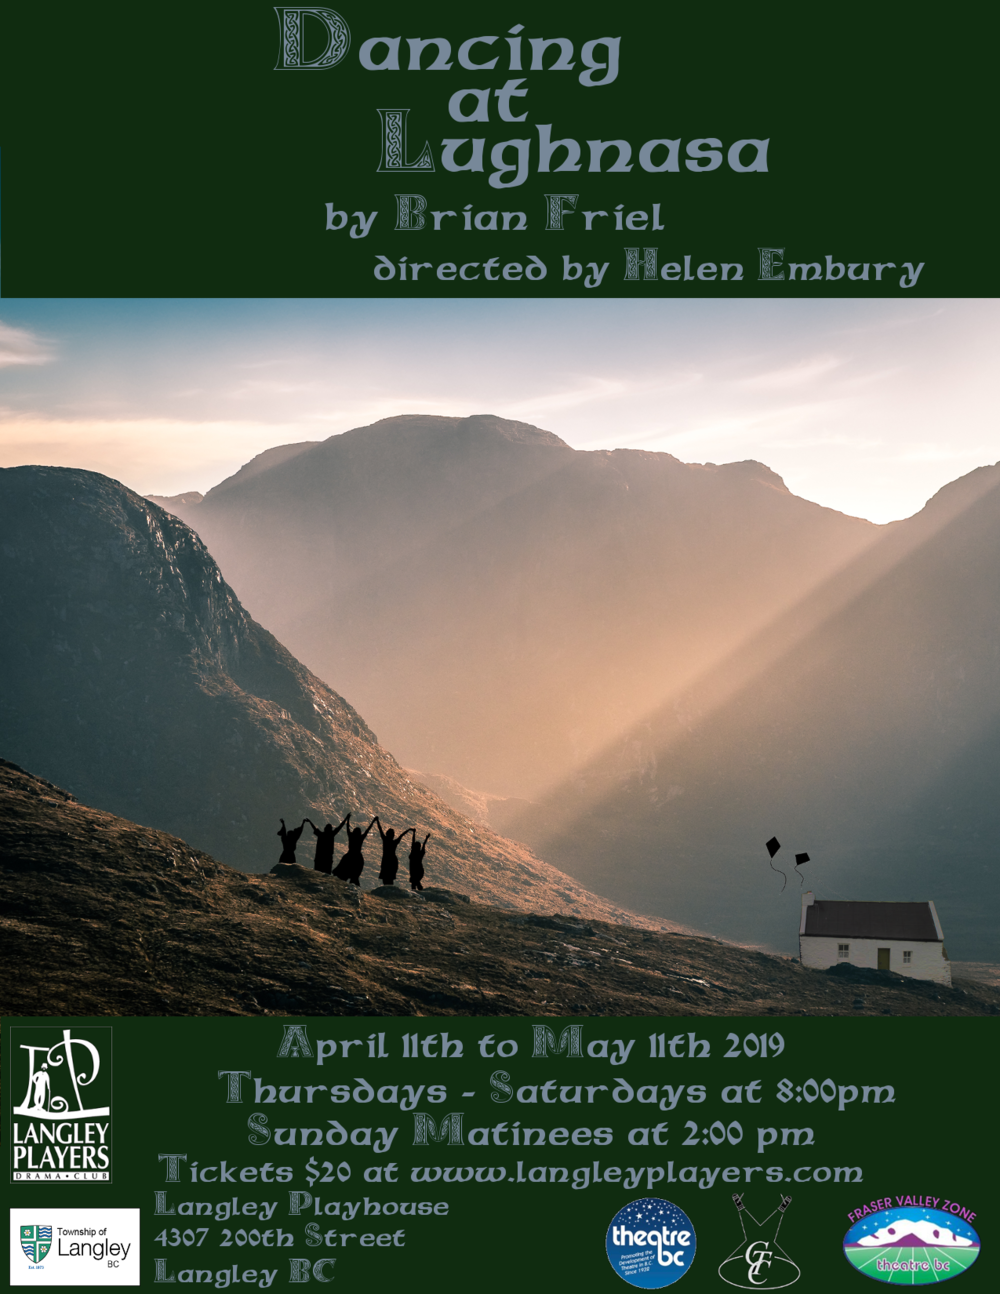 Purchase single-show tickets to Dancing at Lughnasa.